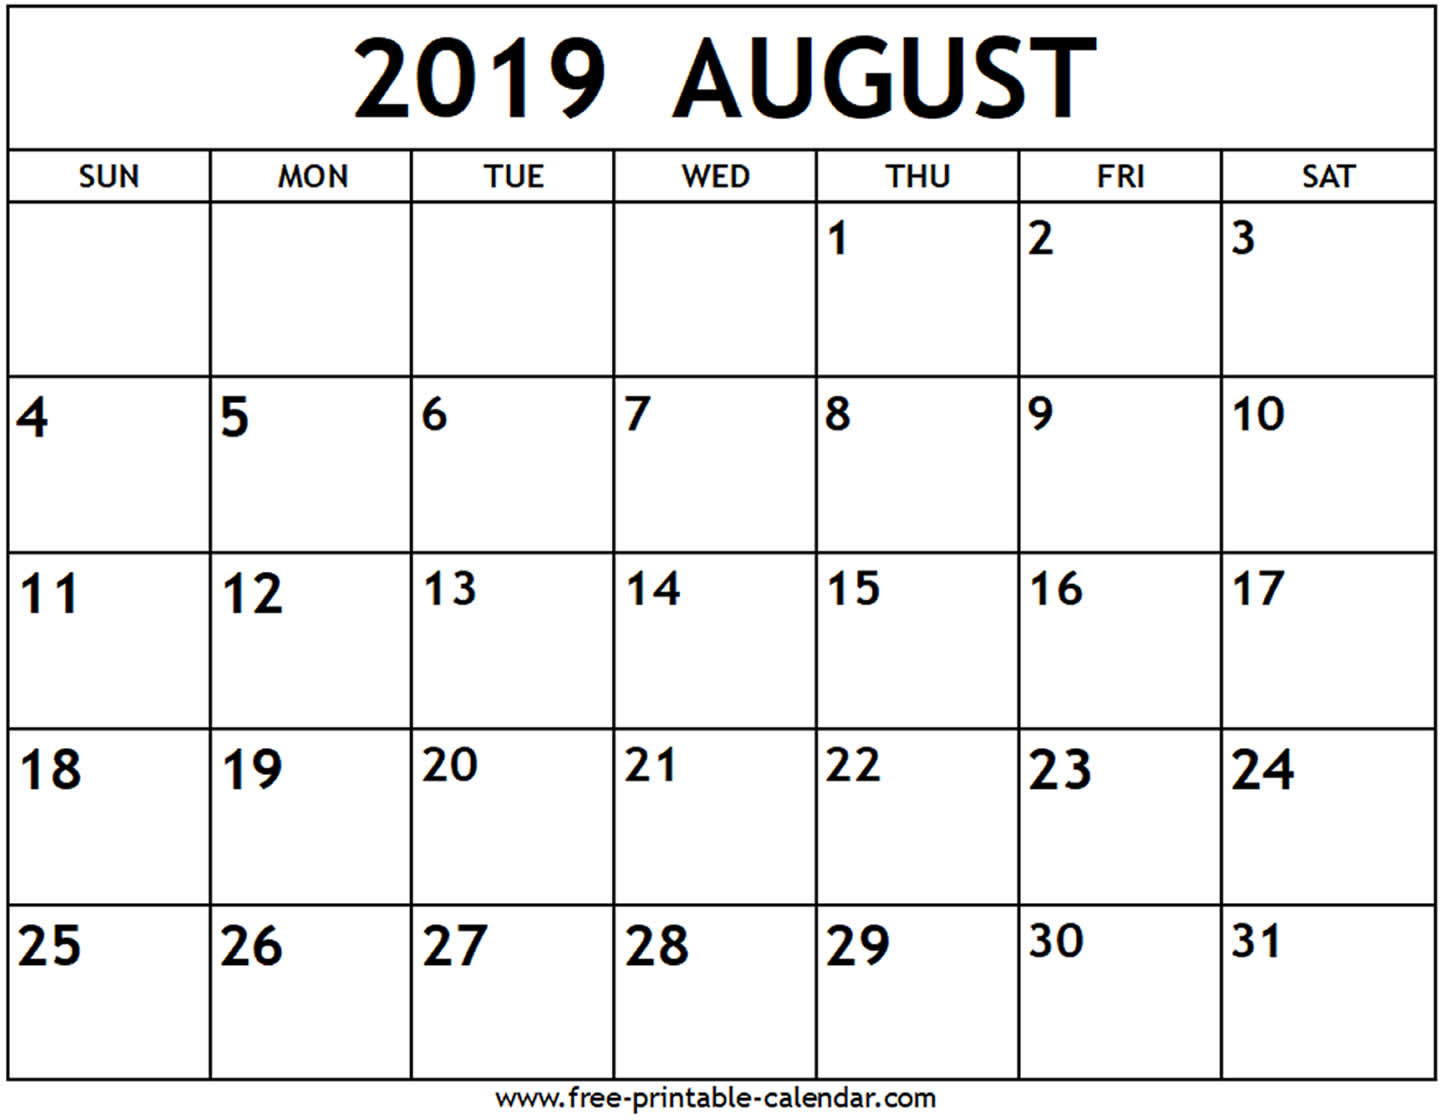 August 2019 Calendar - Free-Printable-Calendar pertaining to Blank Calendar Of August Full Page